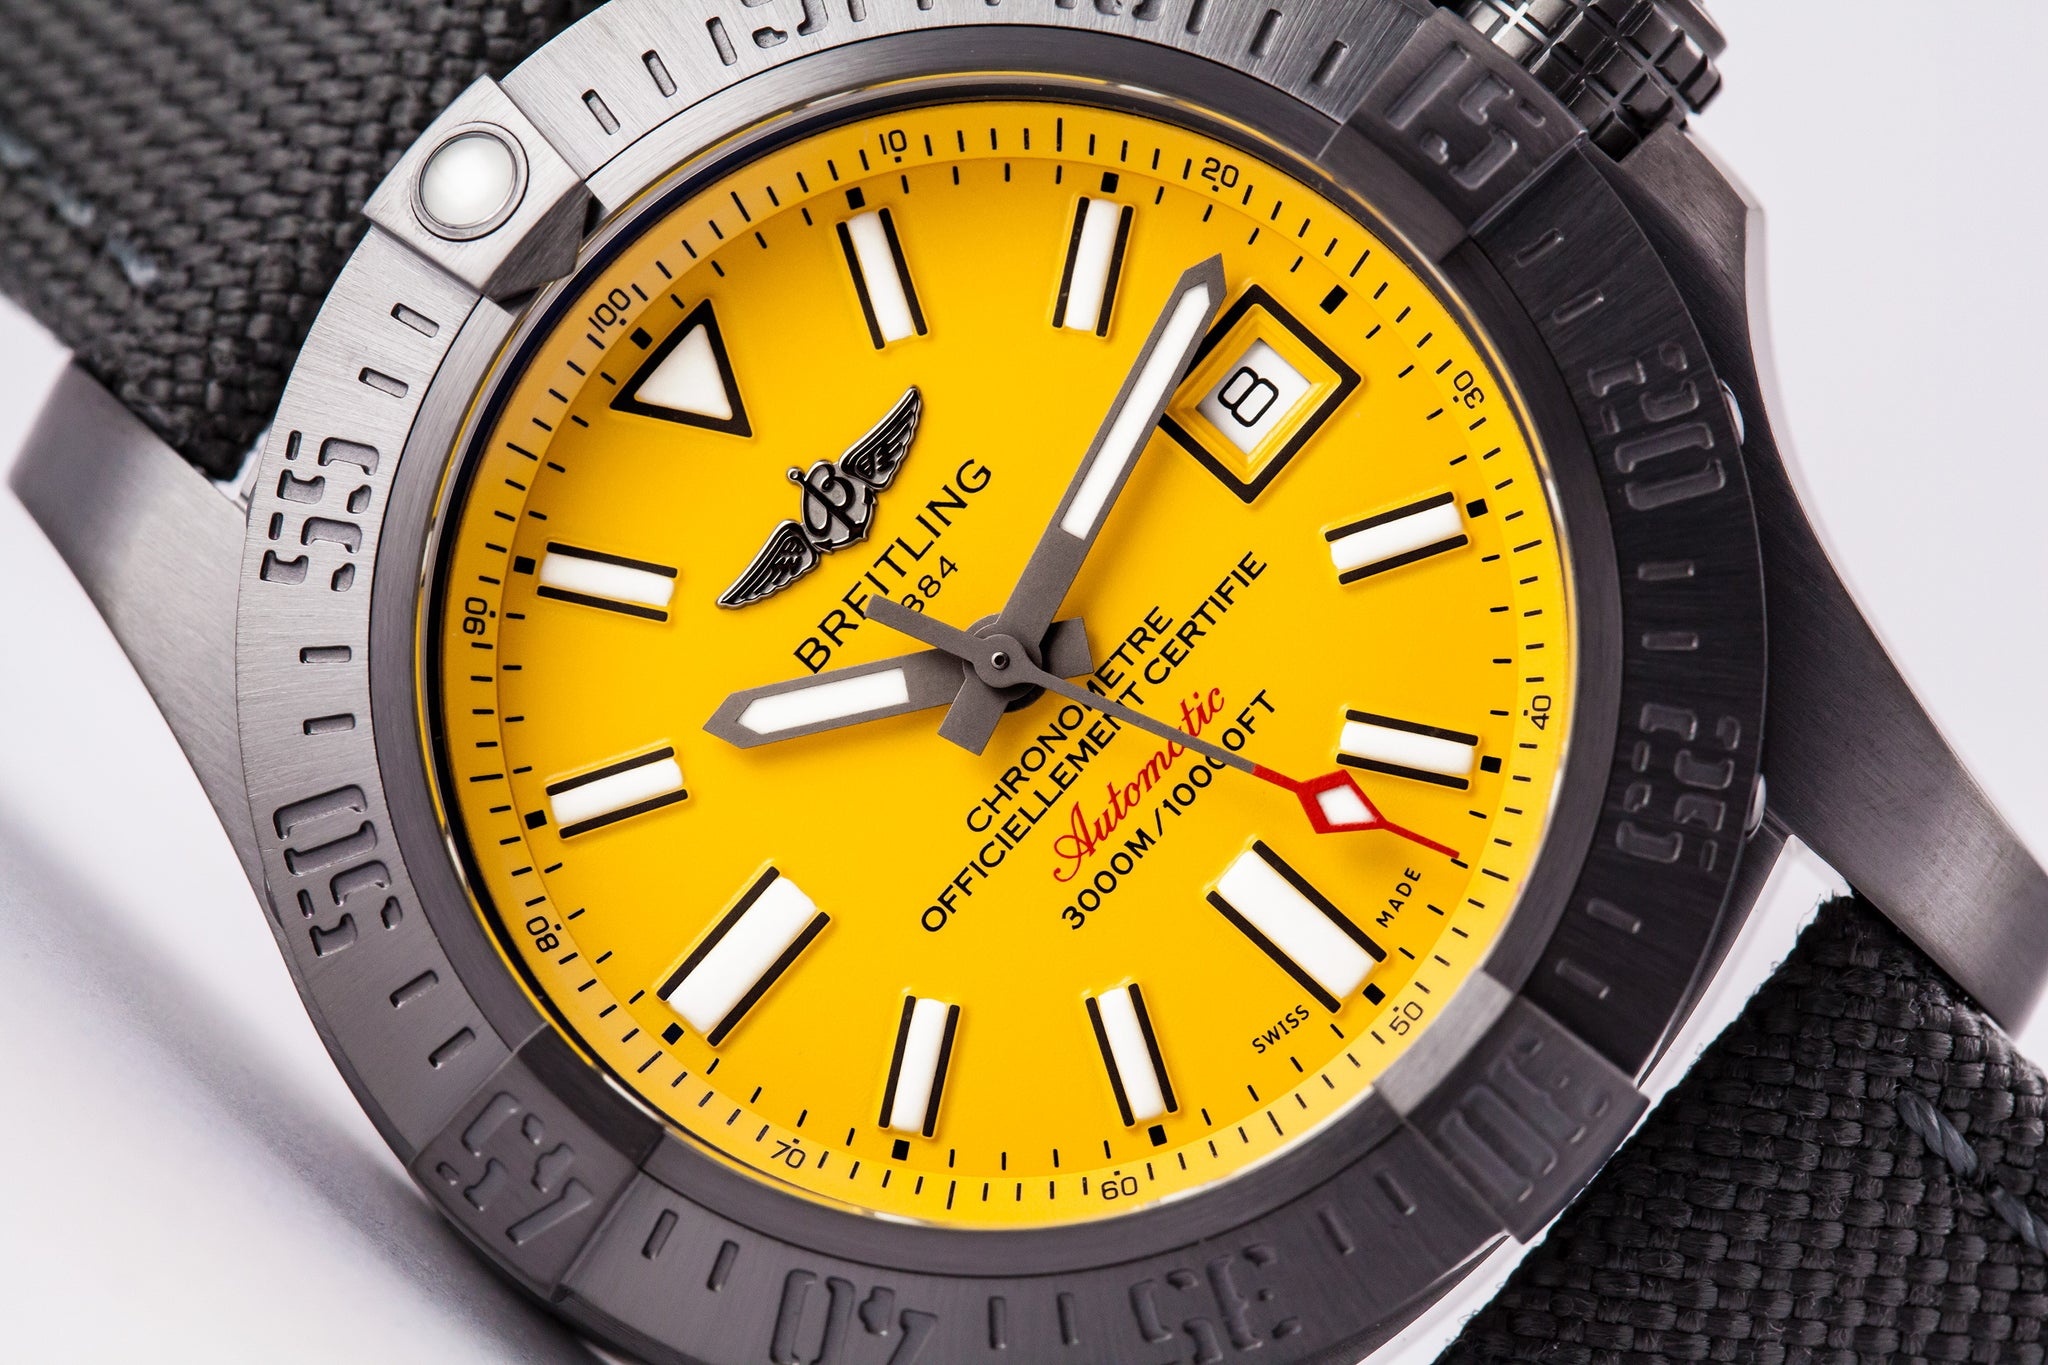 Breitling Avenger II Seawolf Blacksteel Limited Edition Yellow